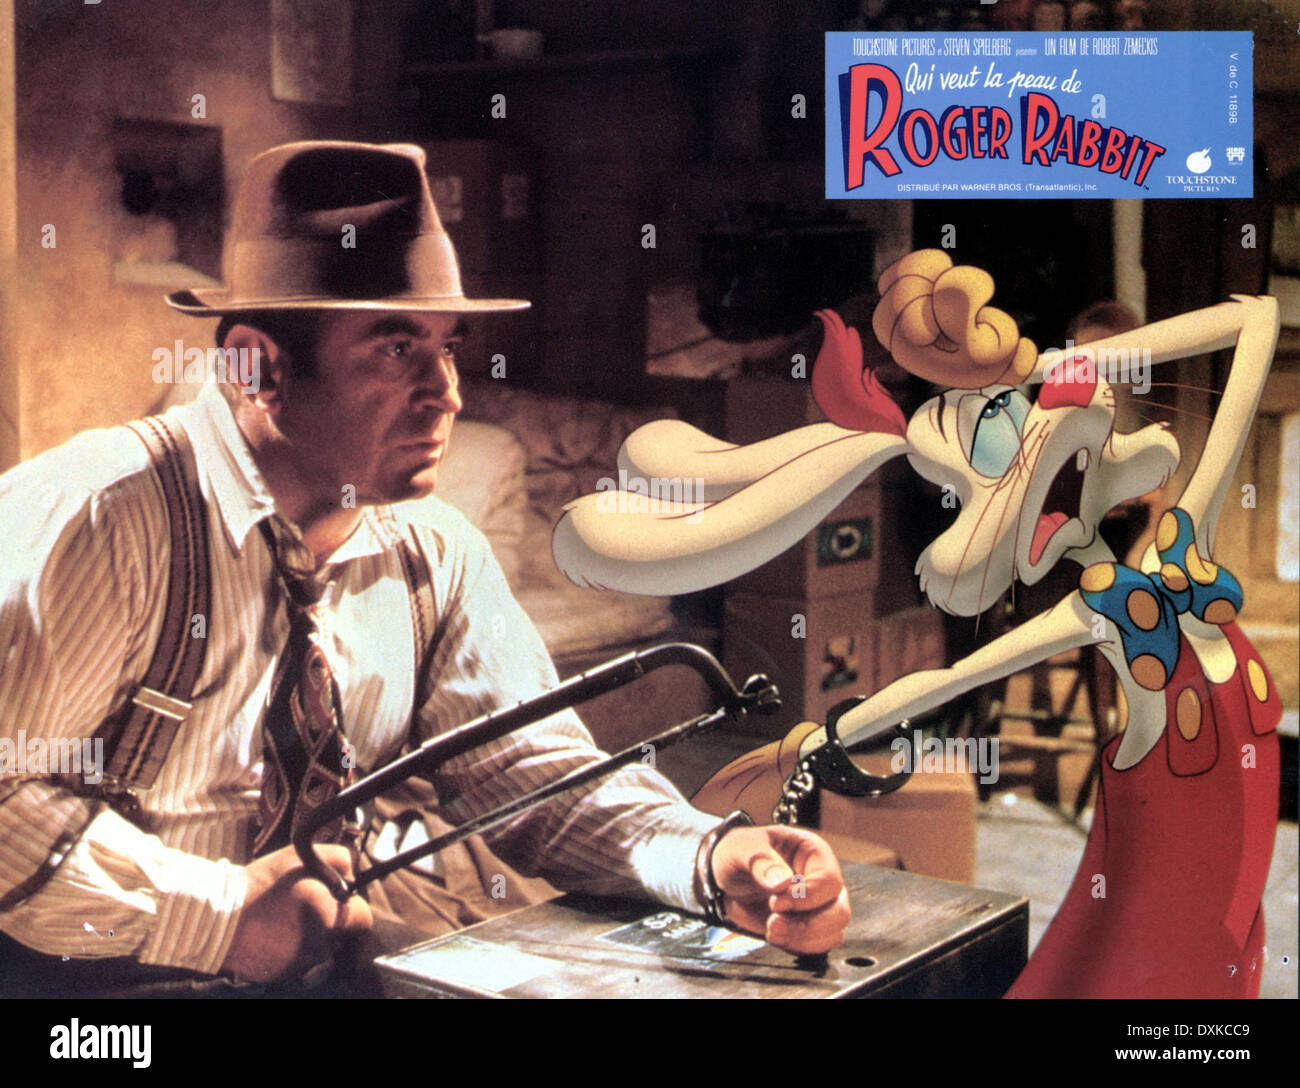 essay framed roger rabbit Find great deals on ebay for who framed roger rabbit vhs and who framed roger rabbit laserdisc shop with confidence.